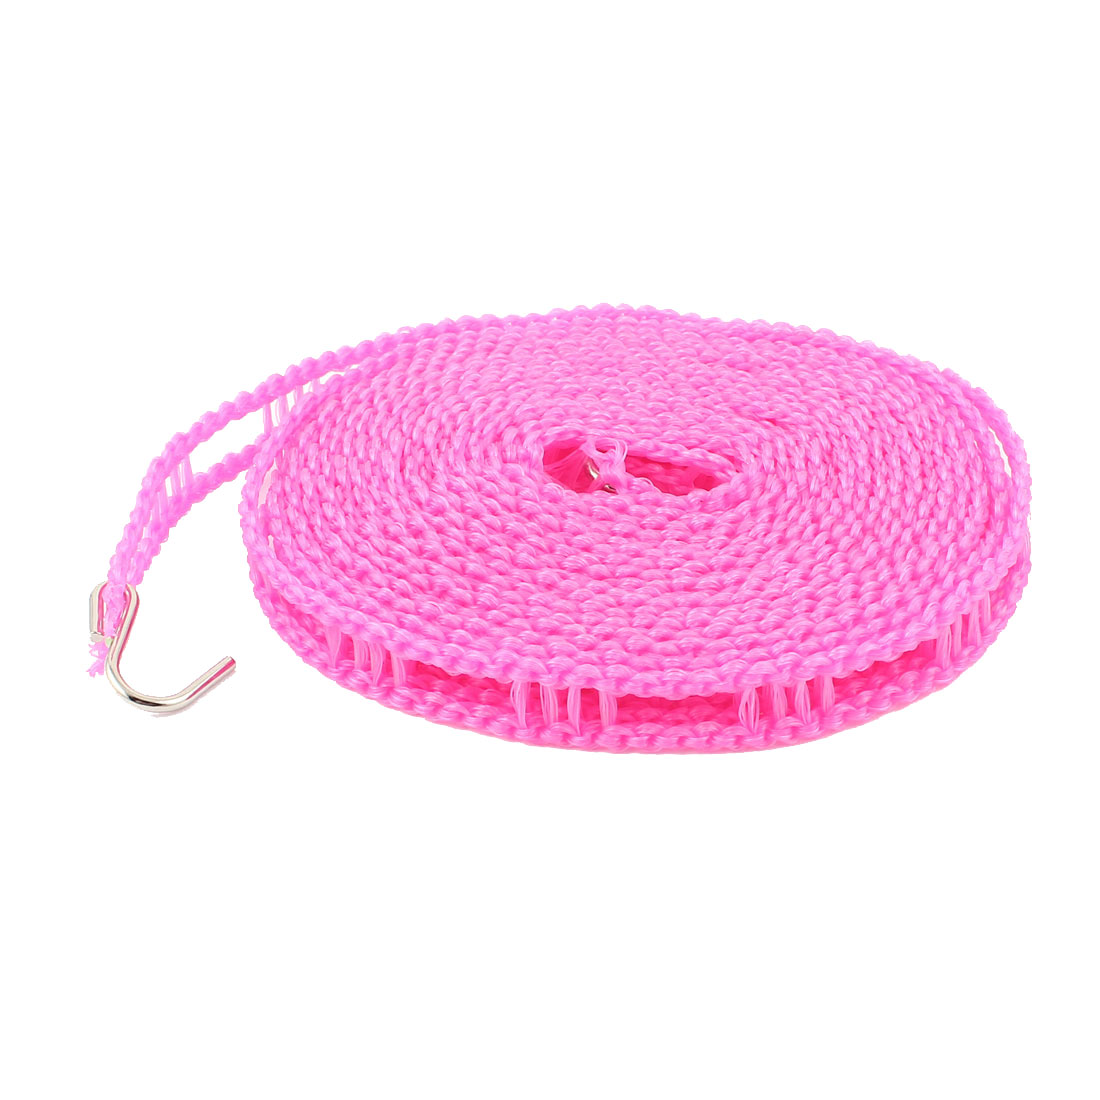 Outdoor Travel Clothesline Laundry Non-slip Washing Clothes Line Rope Fuchsia